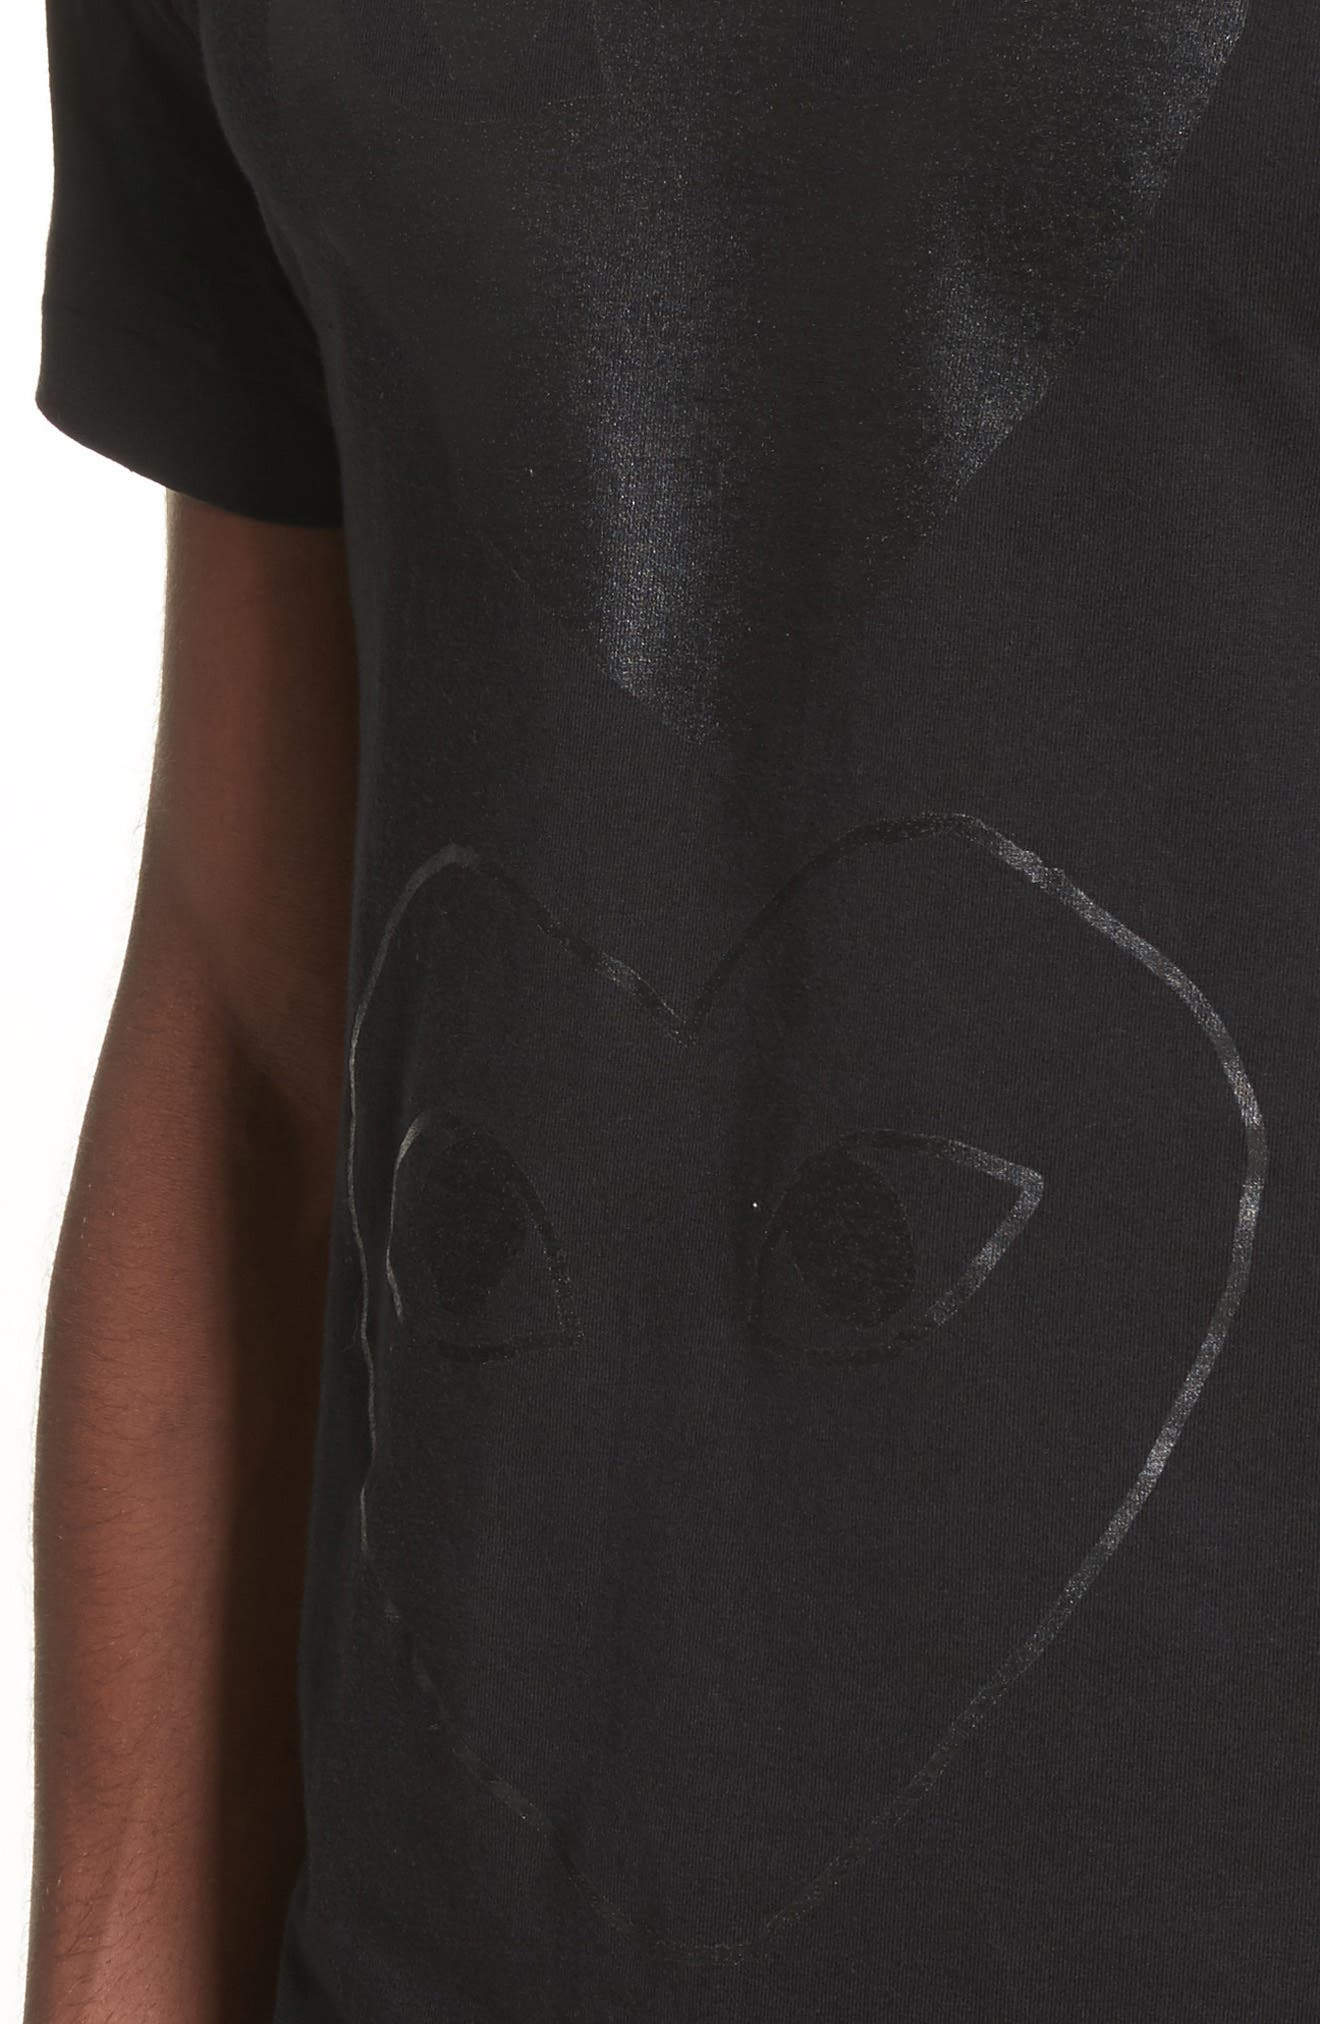 Comme des Garçons PLAY Graphic T-Shirt,                             Alternate thumbnail 4, color,                             Black